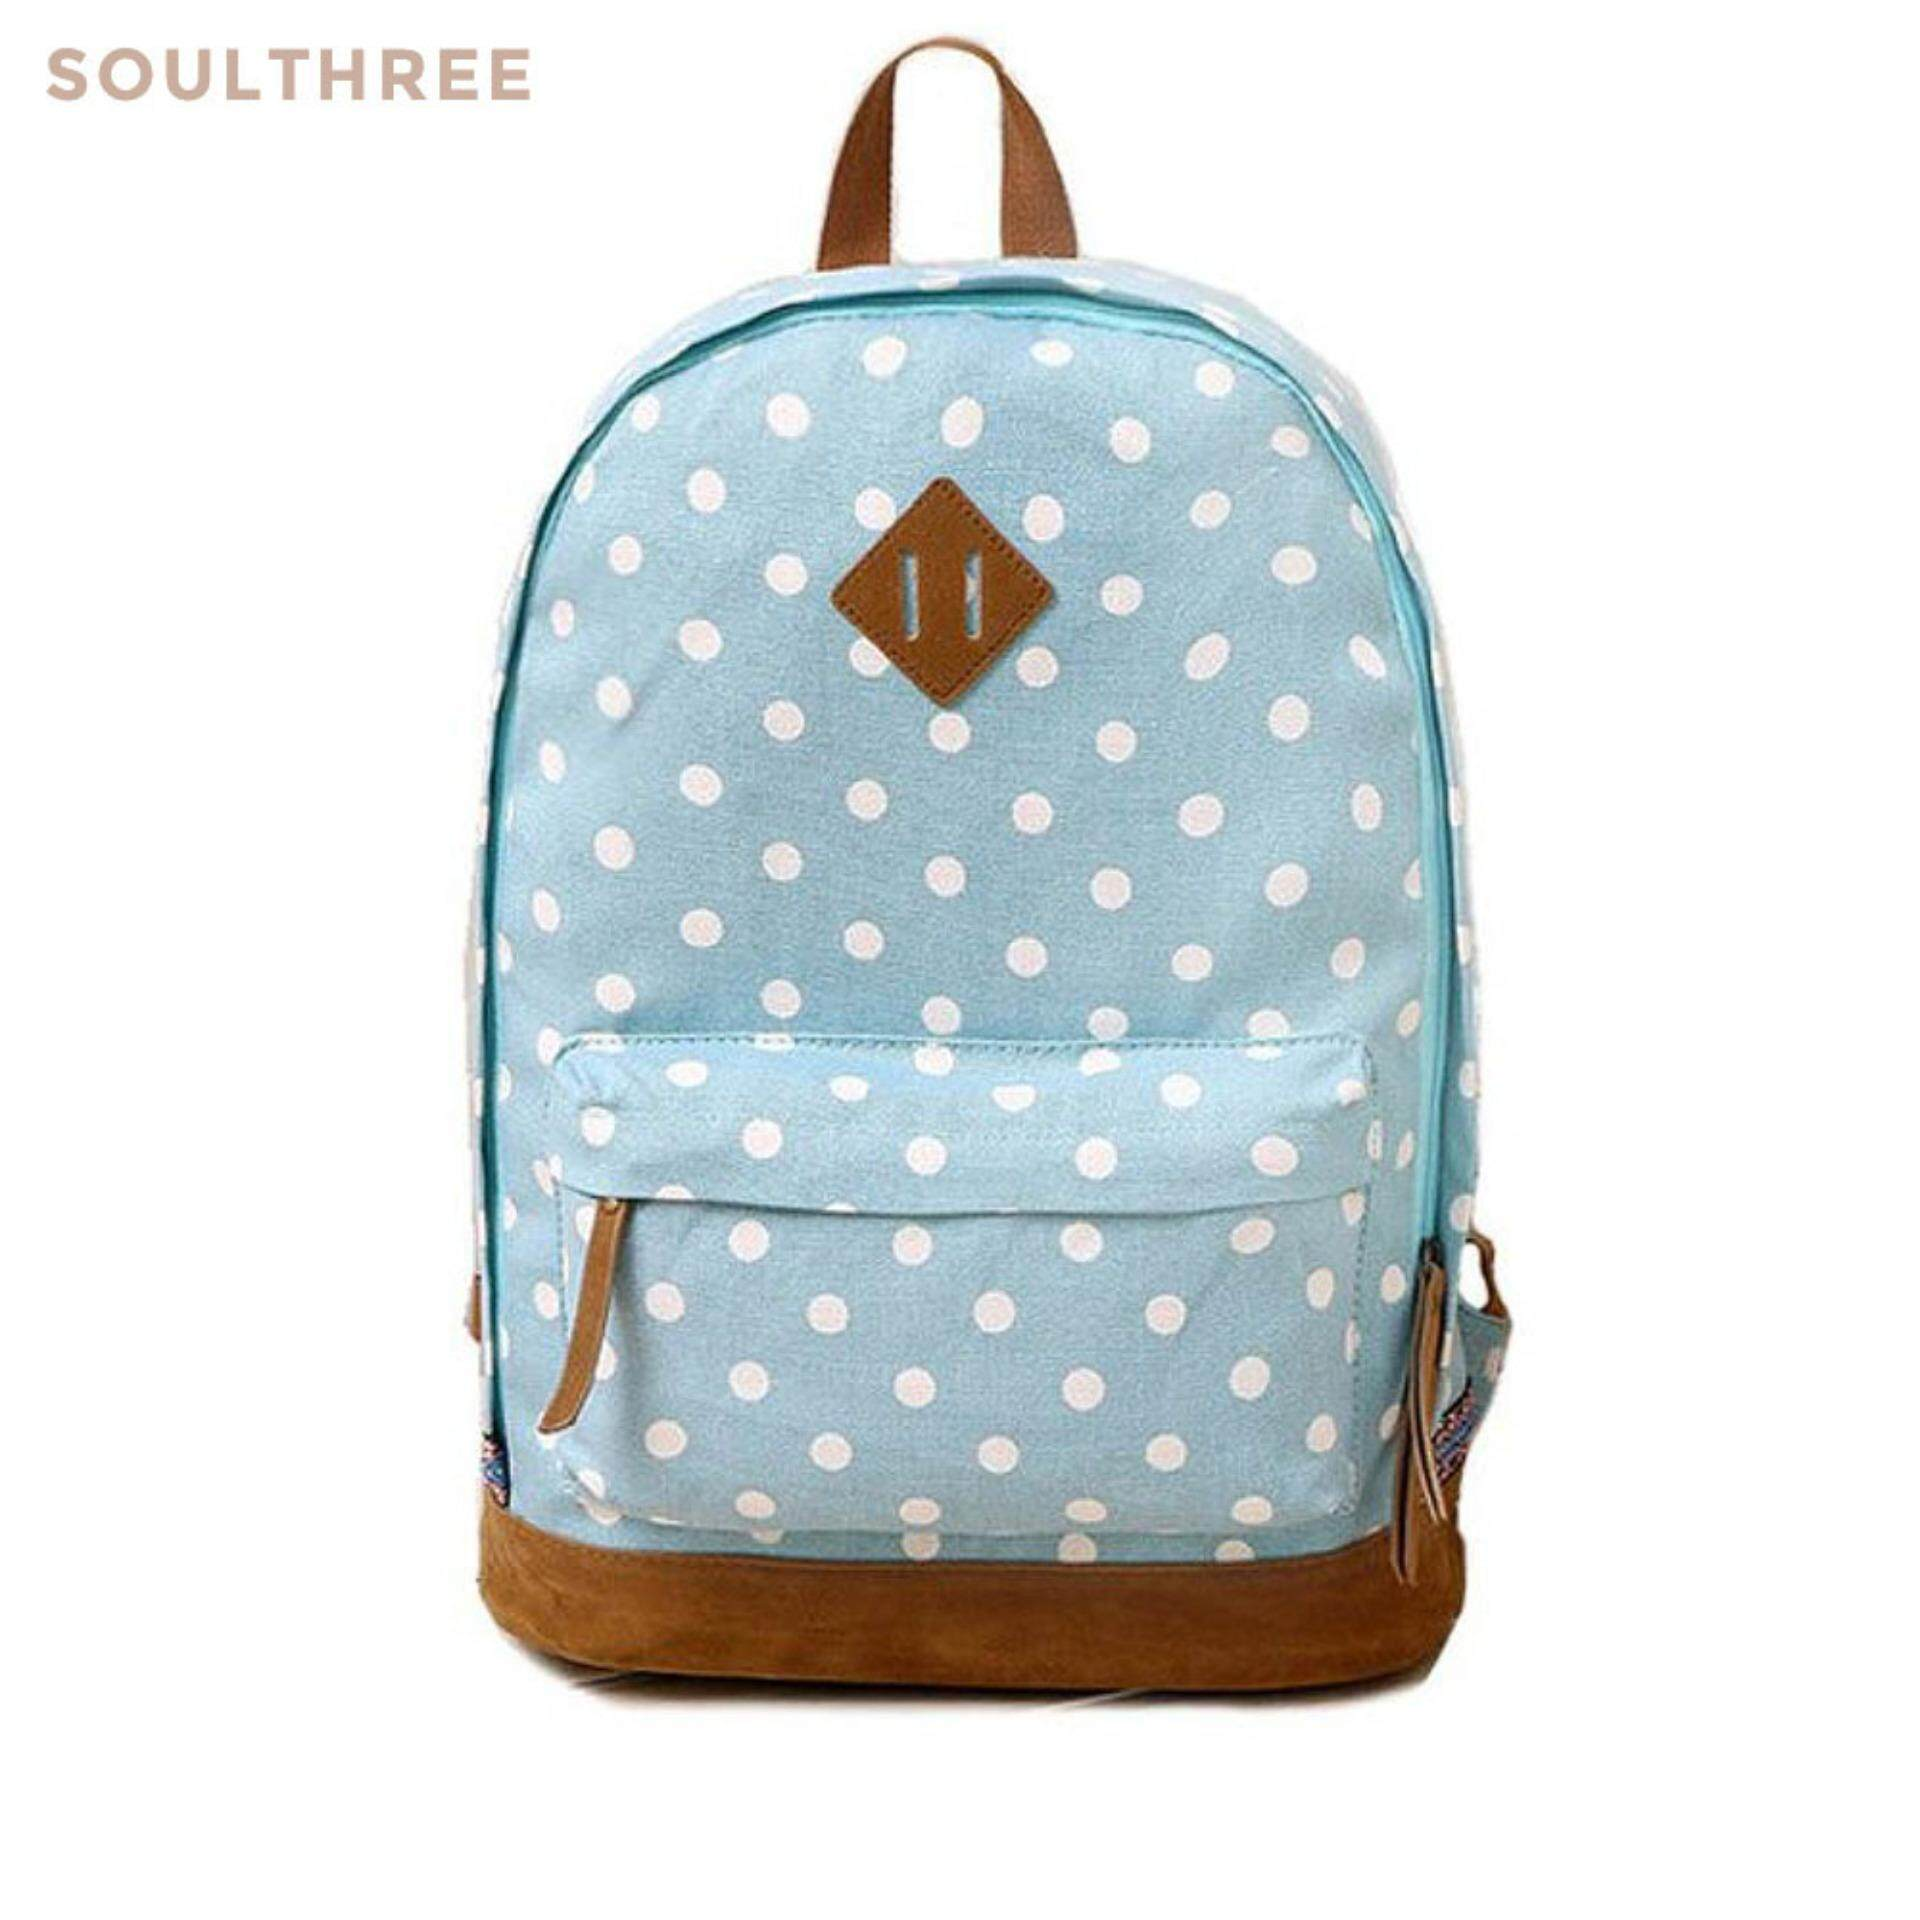 Women Backpacks Buy At Best Price In Malaysia Tas Ransel Distro Backpack Traveling Lots Of Pockets Mossimo Supply Co Us Imported Denim Polka Dots Canvas Print Lash Tab Patch Casual School